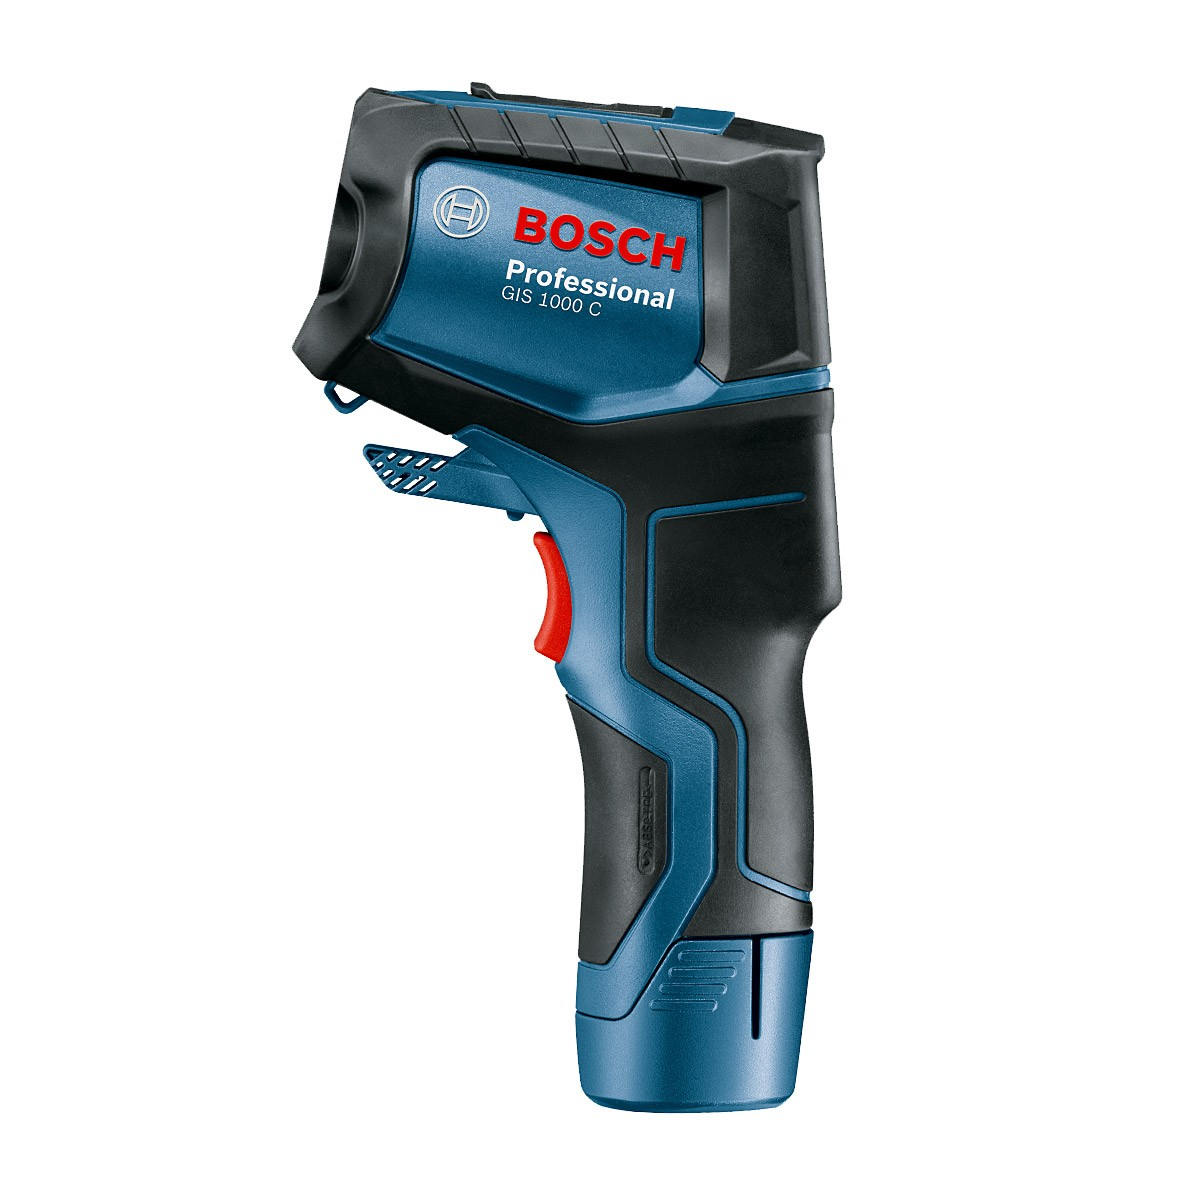 Bosch Detector Bosch Gis 1000 C Professional Thermal Detector Imager